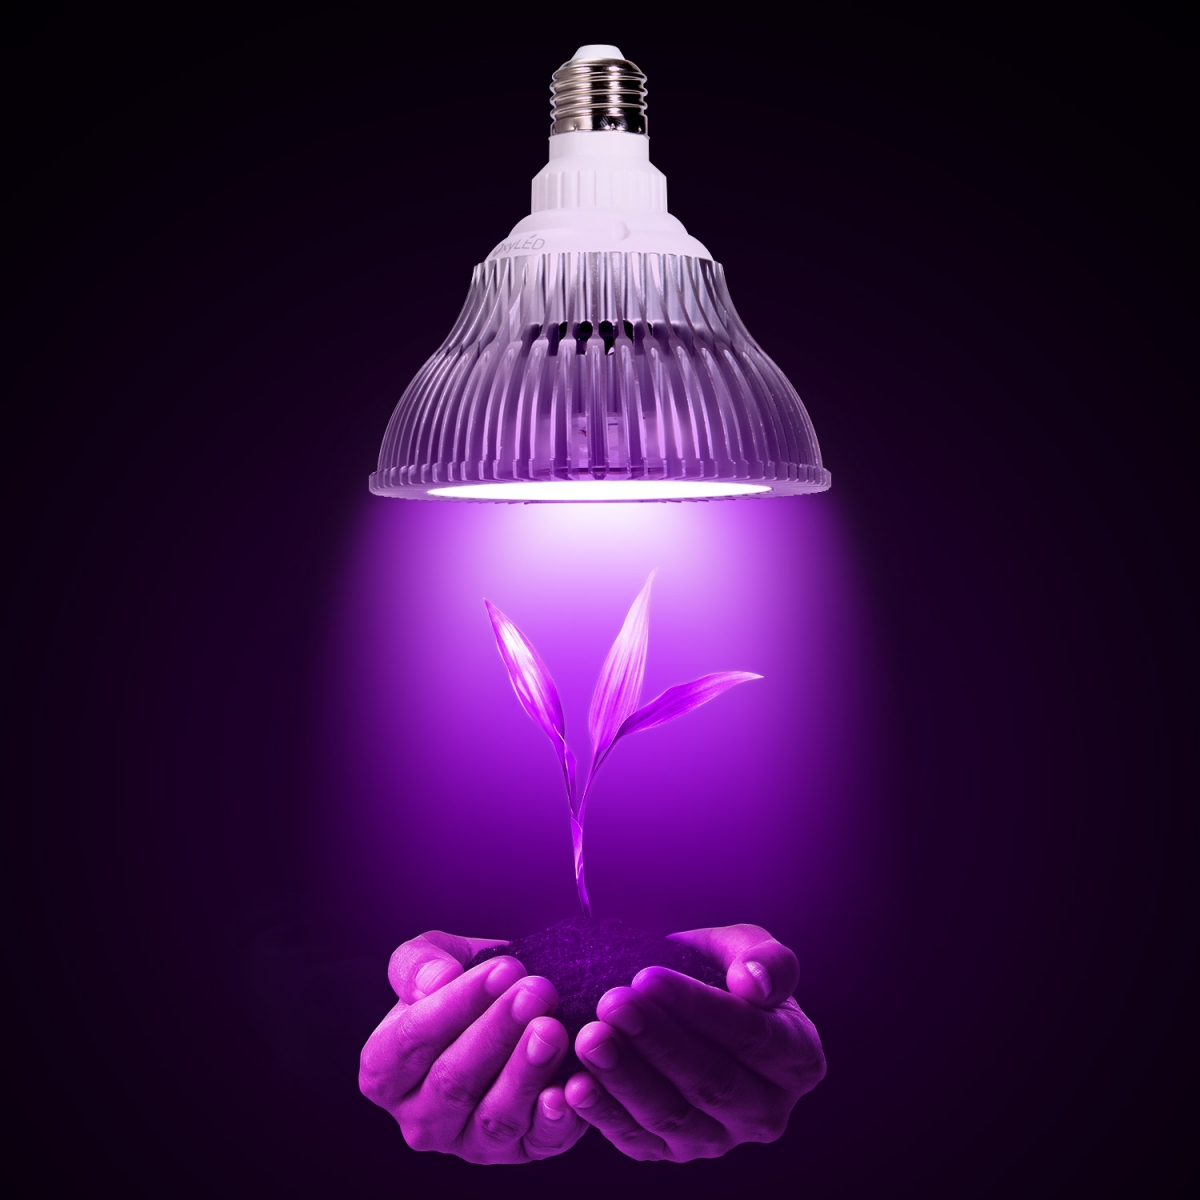 OxyLED LED Plant Grow Light Bulb, Hydroponic Plant Grow Lights for Greenhouse and Hydroponic Indoor Plants,  Indoor Plant Growing Lights Bulb (E26 12W 3Blue/9 Red LEDs)